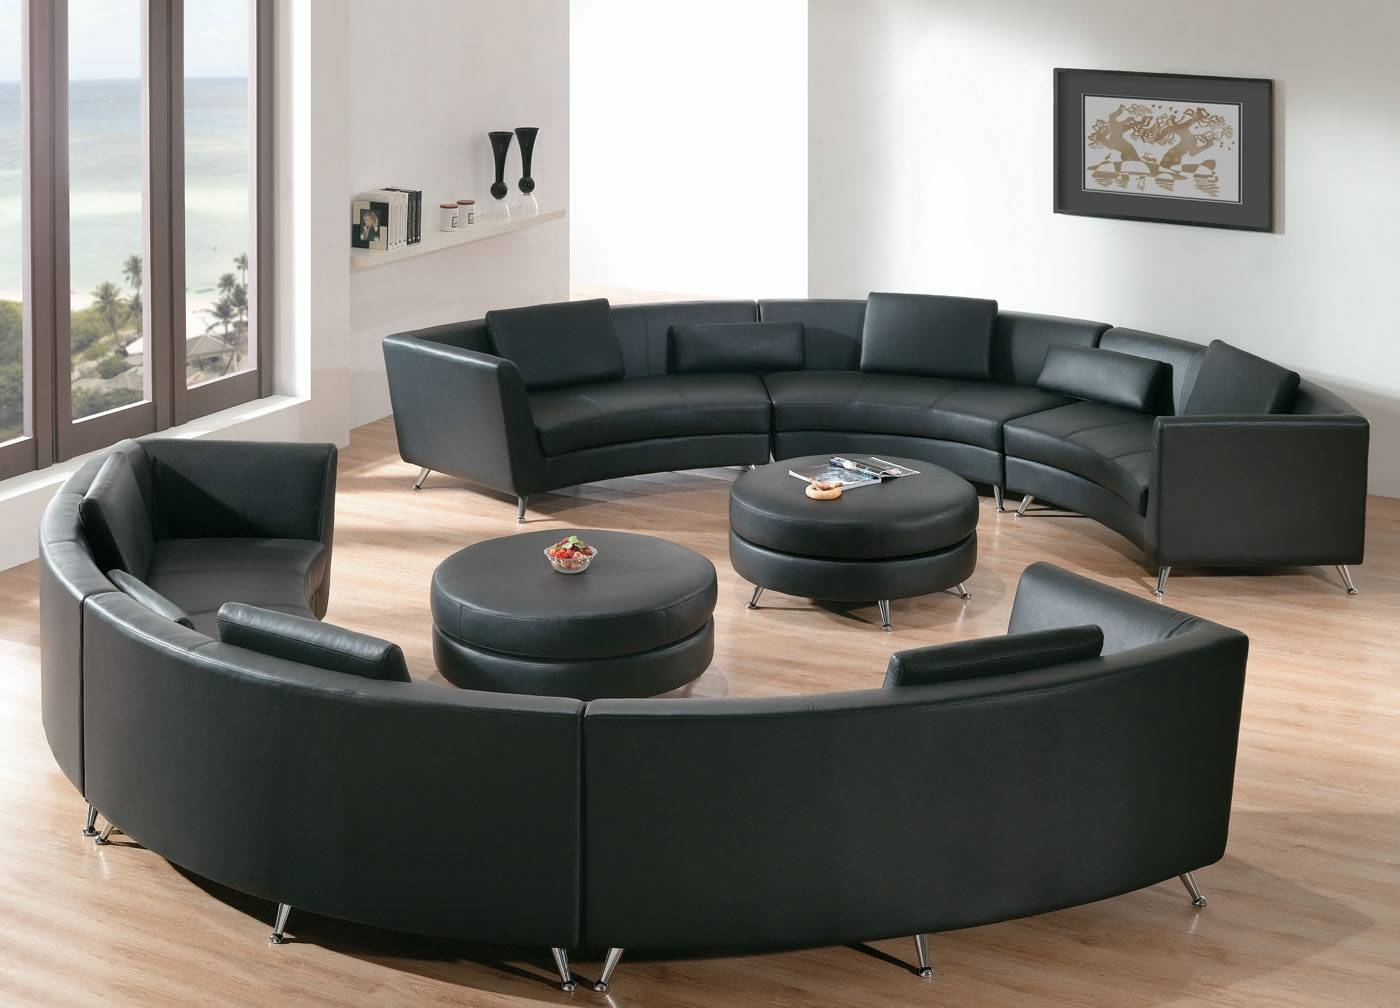 Round Sectional Sofa For Unique Seating Alternative - Traba Homes regarding Circular Sofa Chairs (Image 14 of 30)